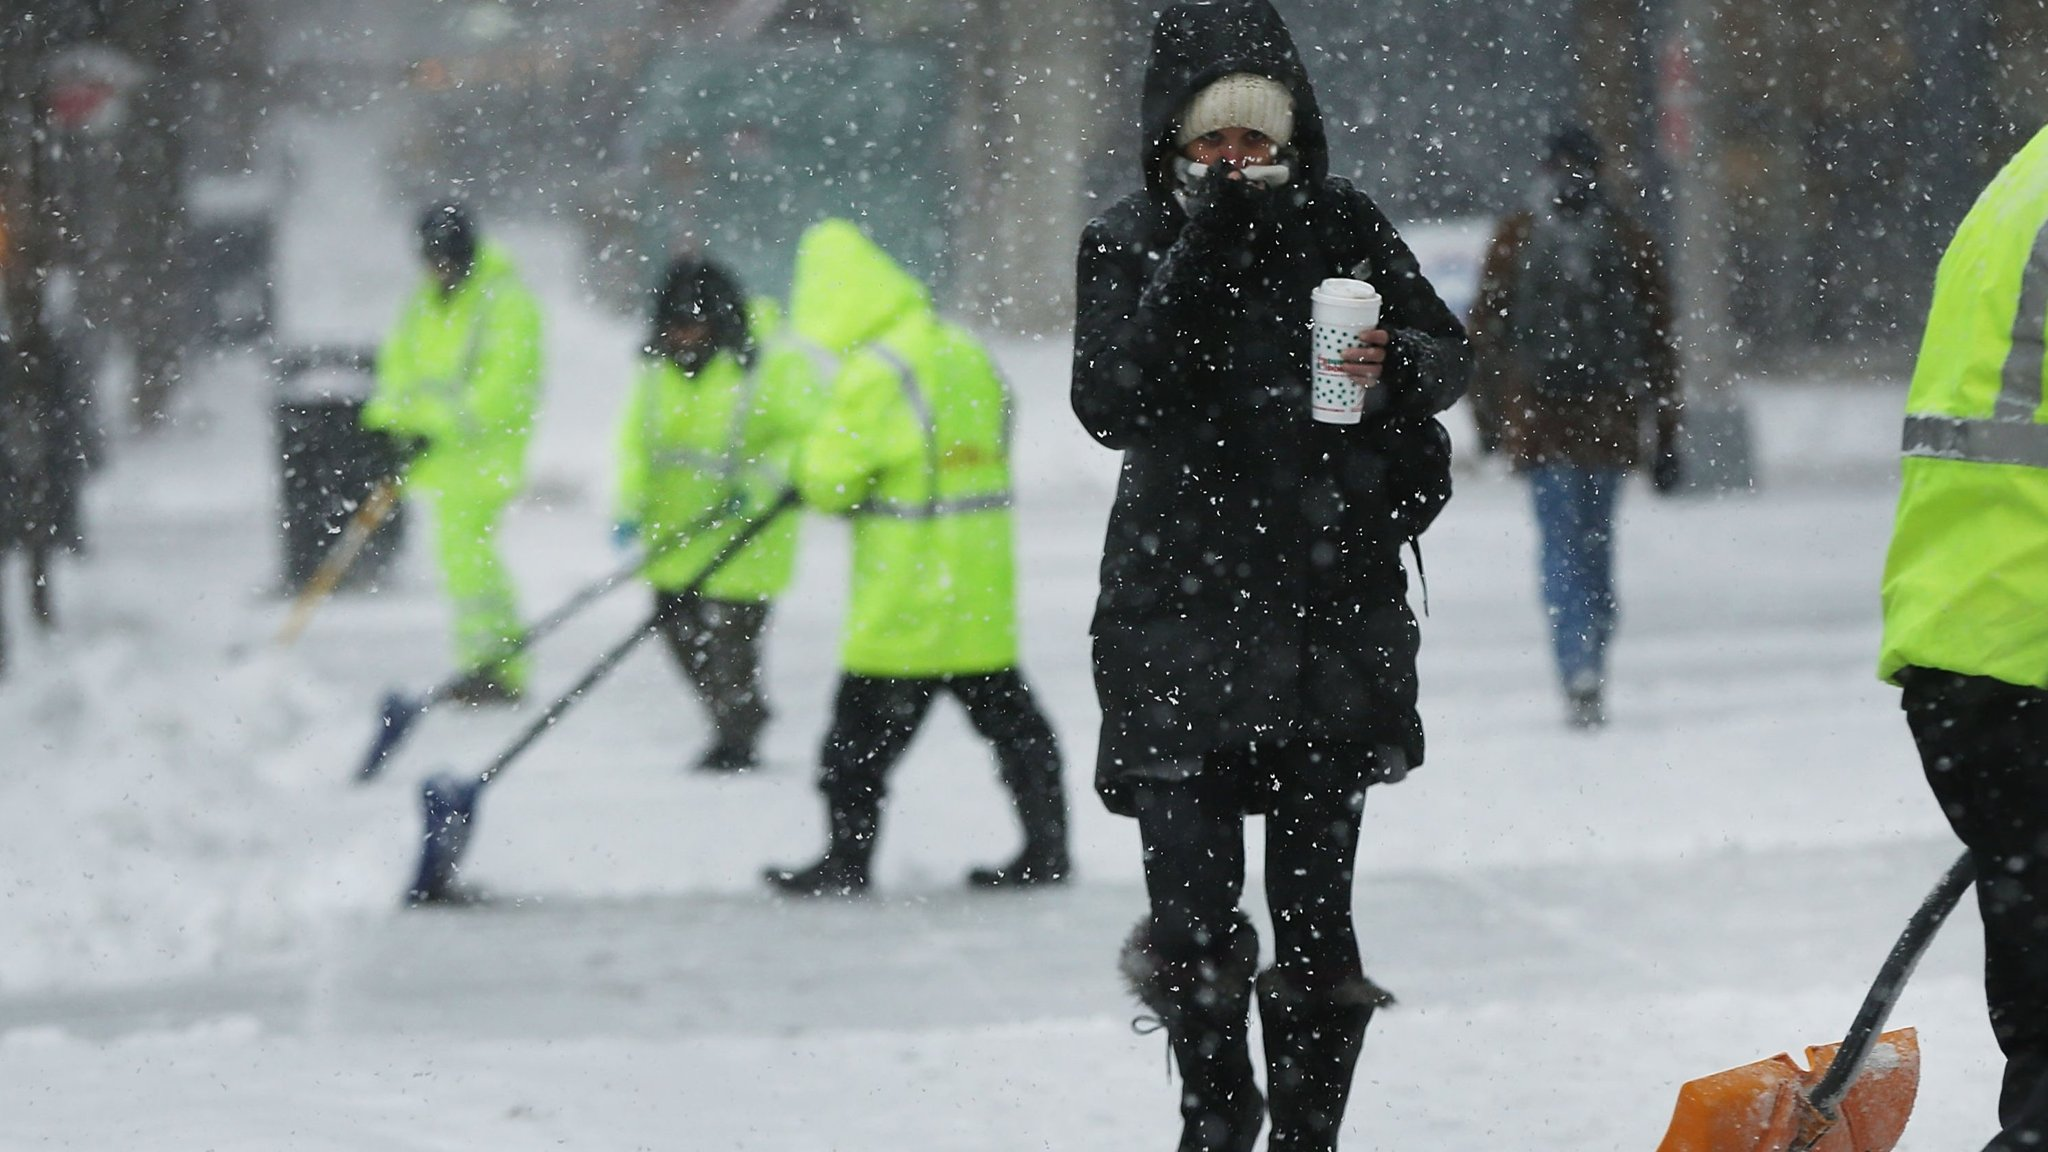 Fuel price spikes add to weather misery in US north-east